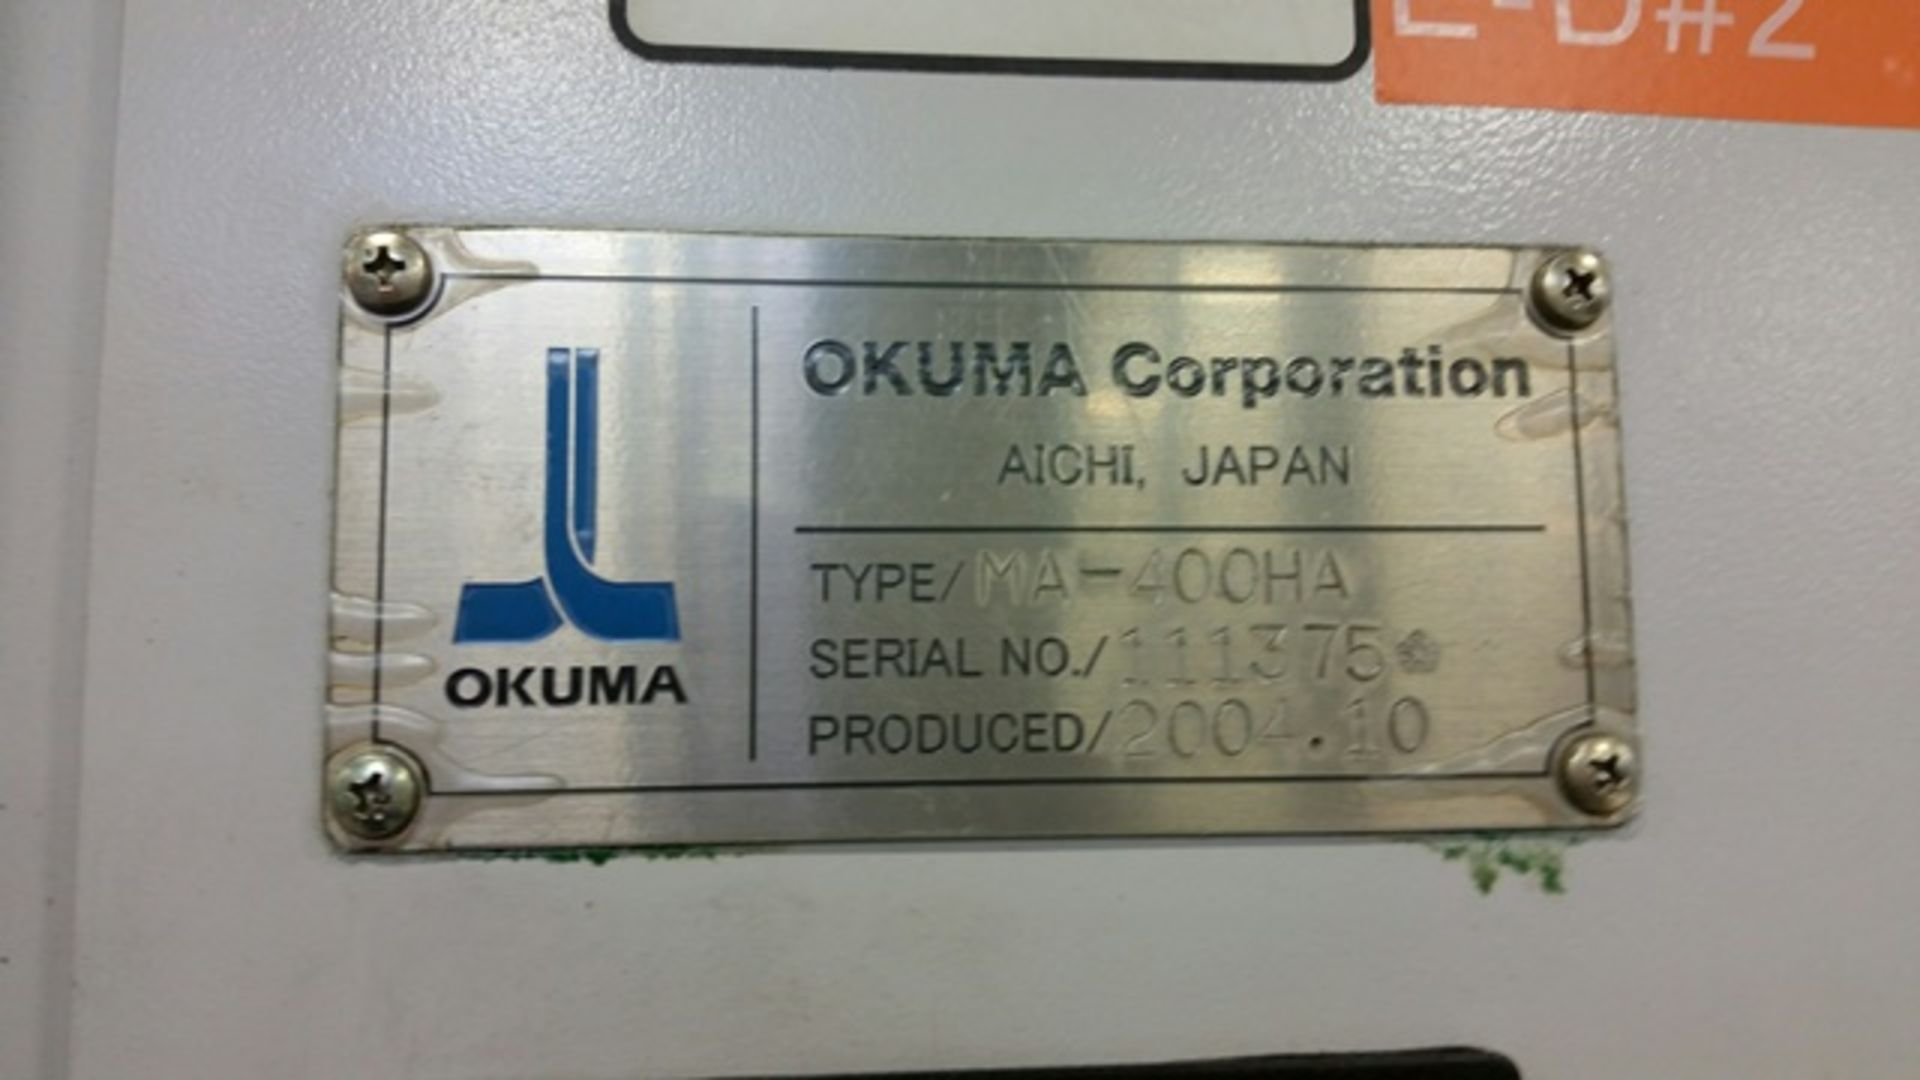 "Lot 3L - 2004 OKUMA MA400HA CNC 4-AXIS HORIZONTAL MACHINING CENTER, ONLY 1,600 HOURS, X: 22"", Y: 24"", Z: 24"","